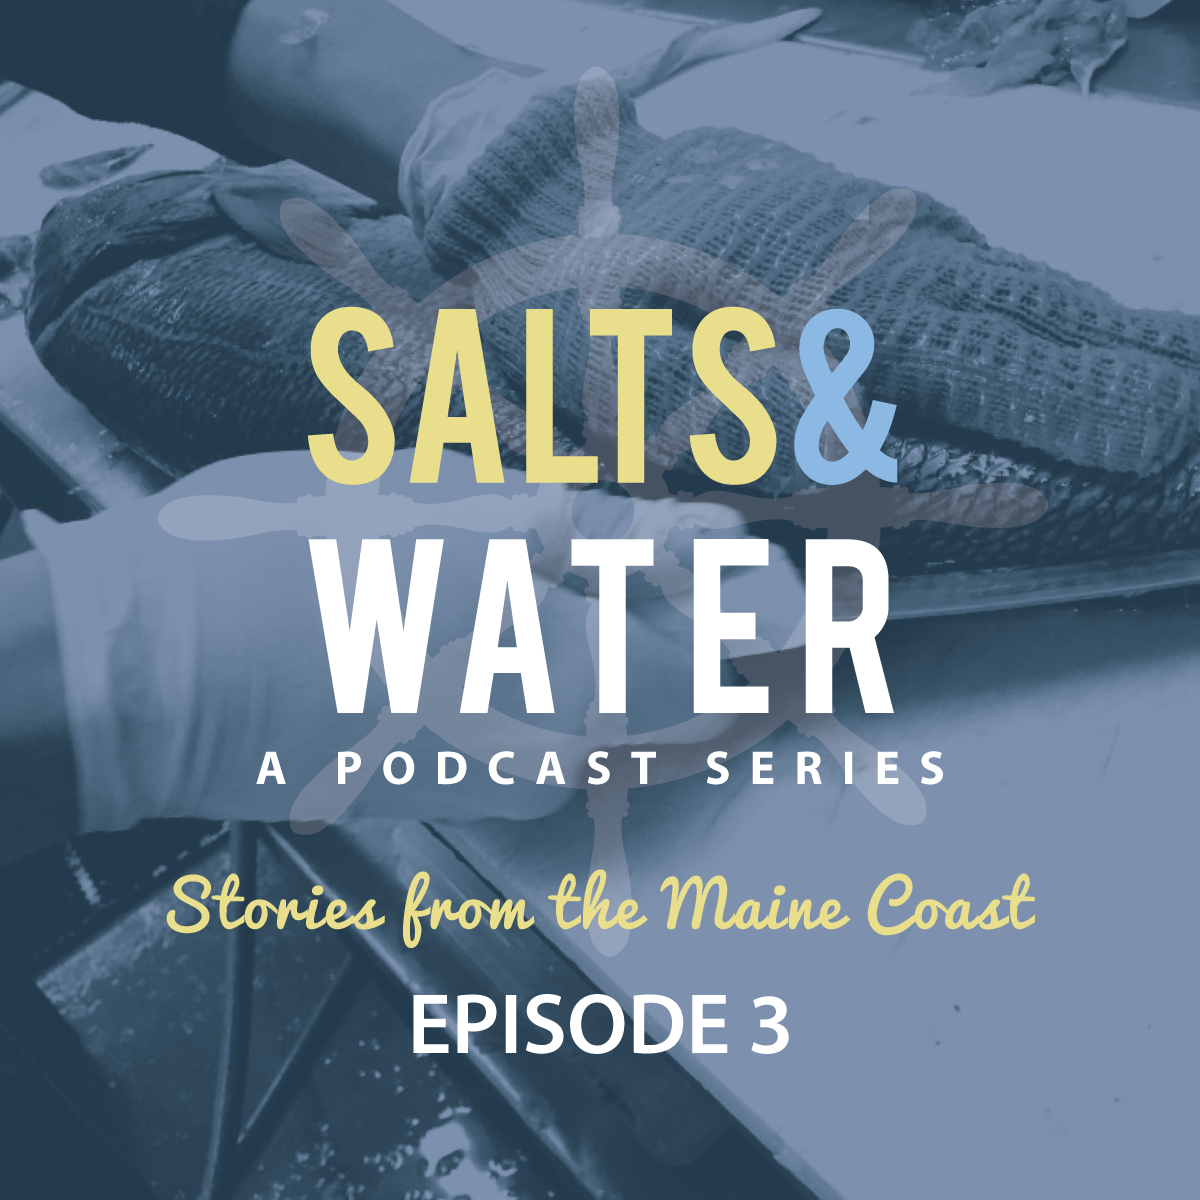 SALTS-AND-WATER-EPISODE-3